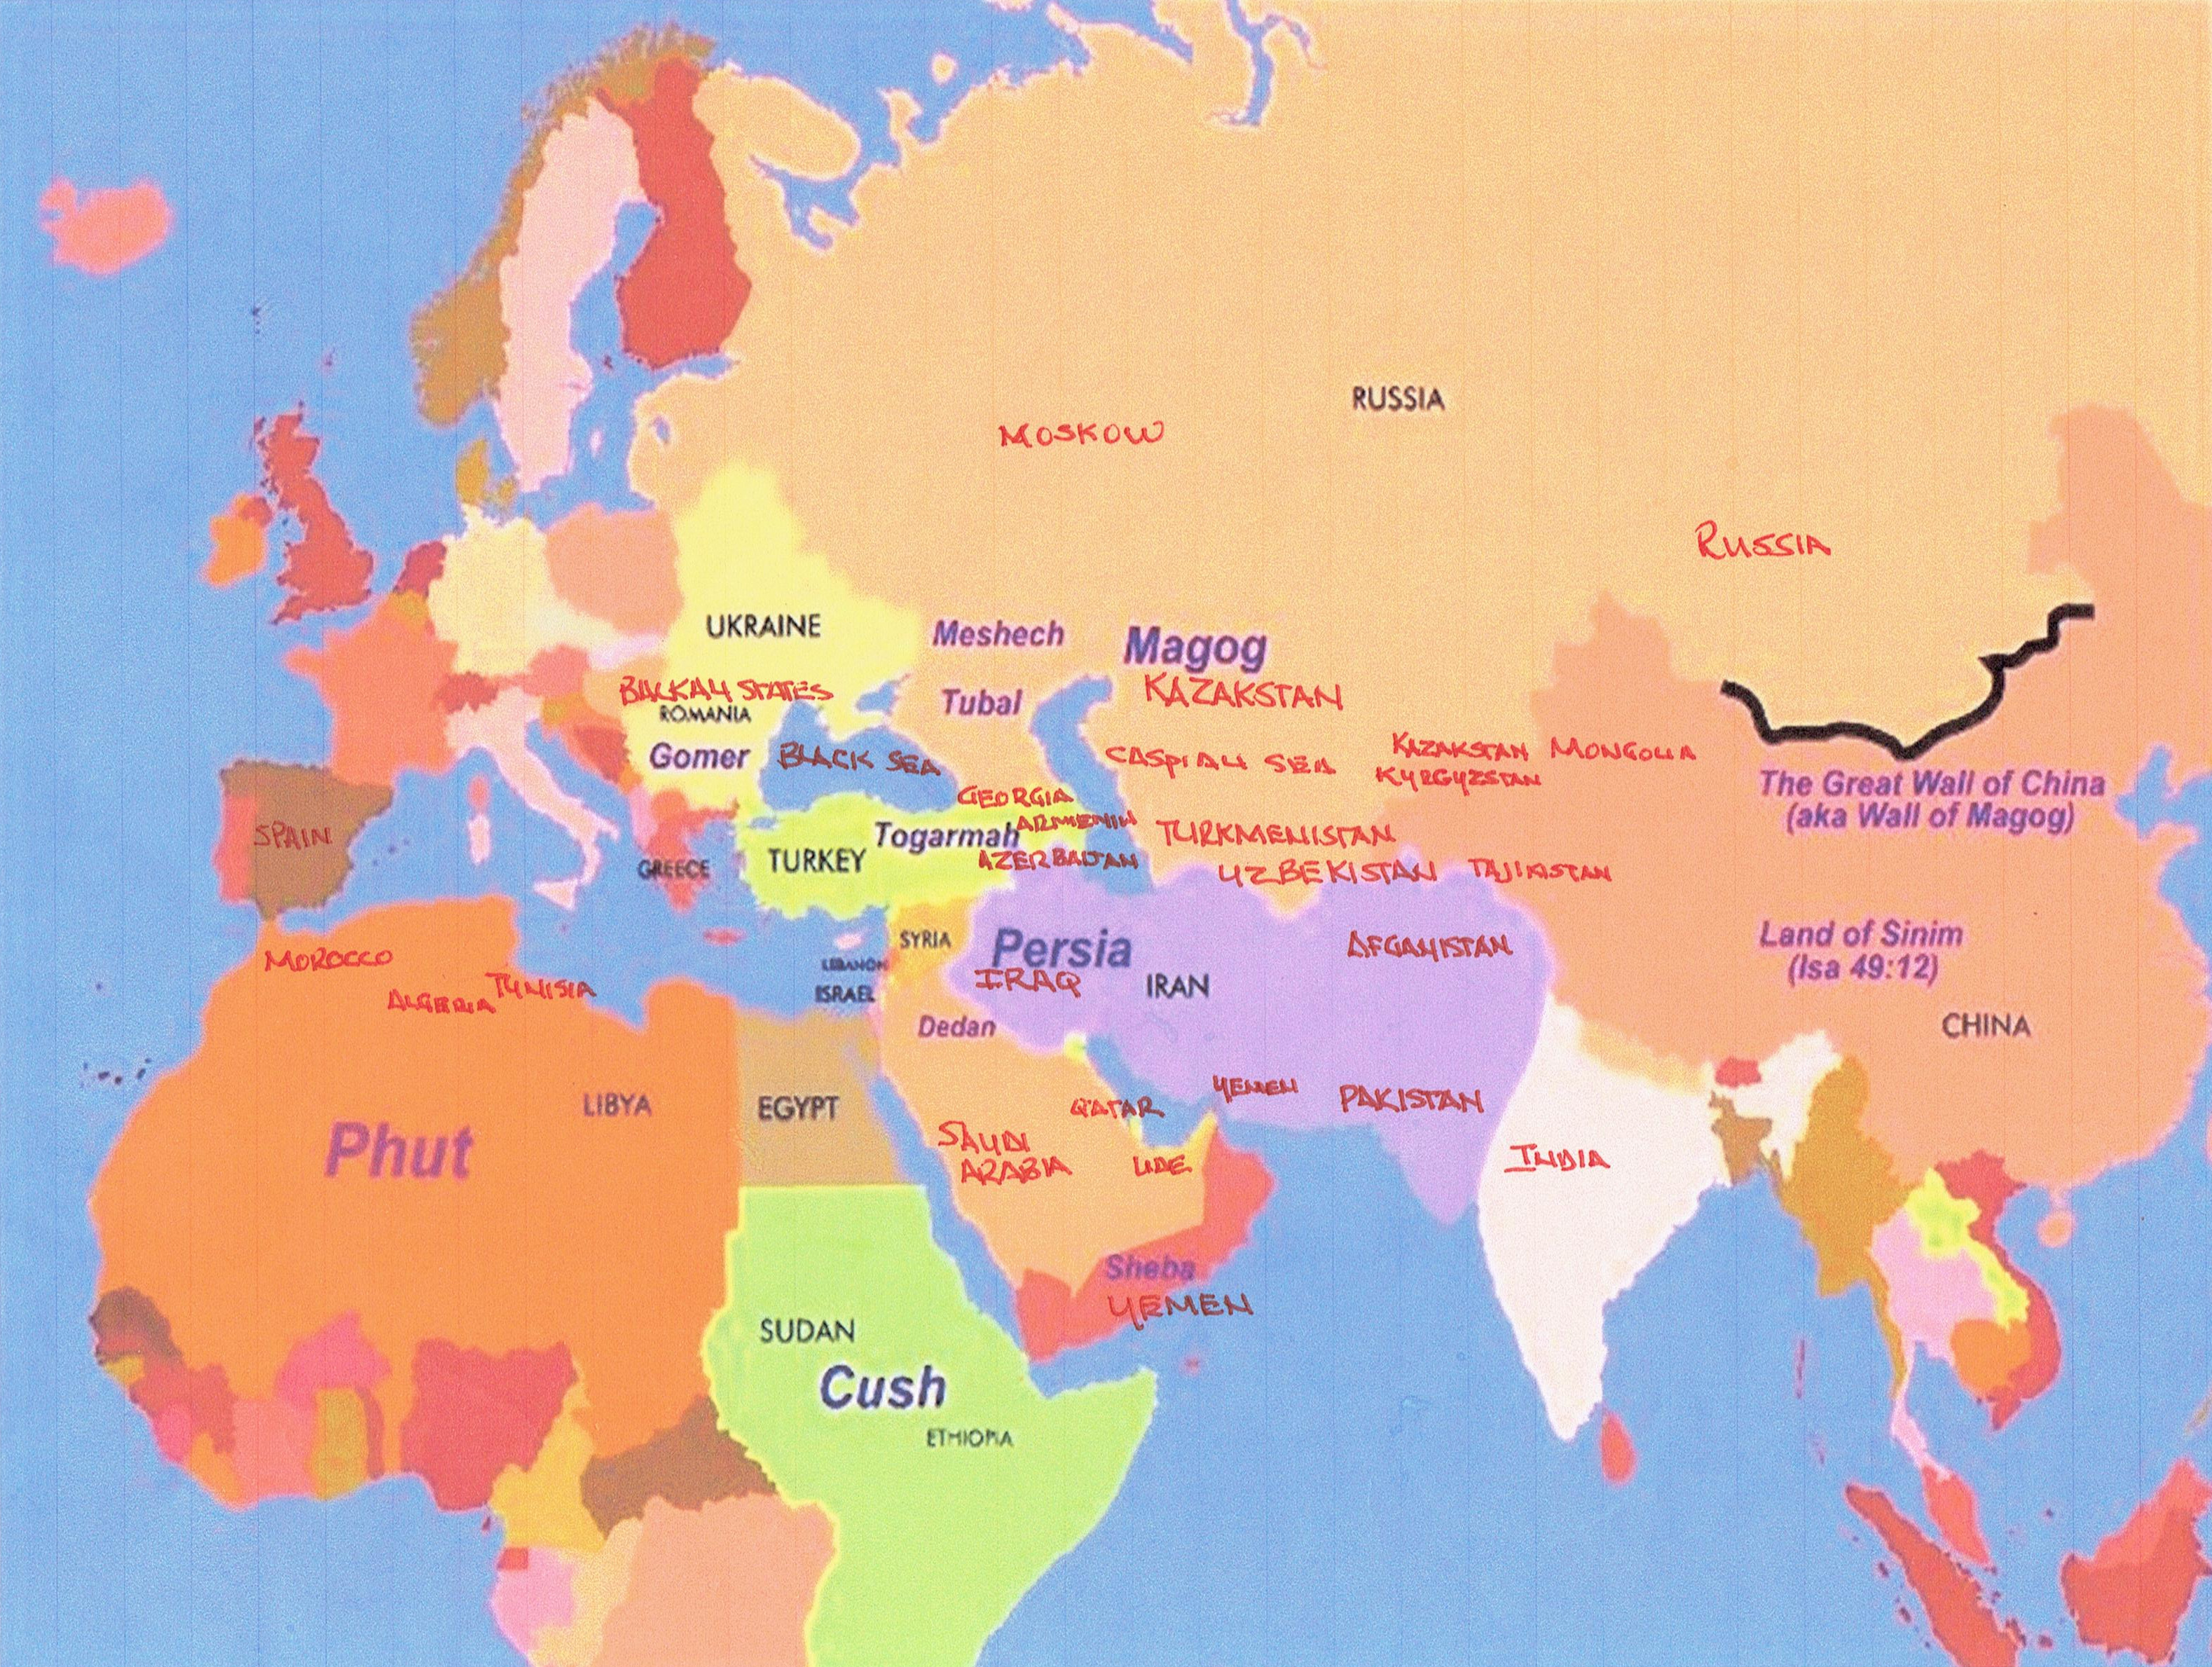 Map of Europe, Asia, Middle East, and North Africa